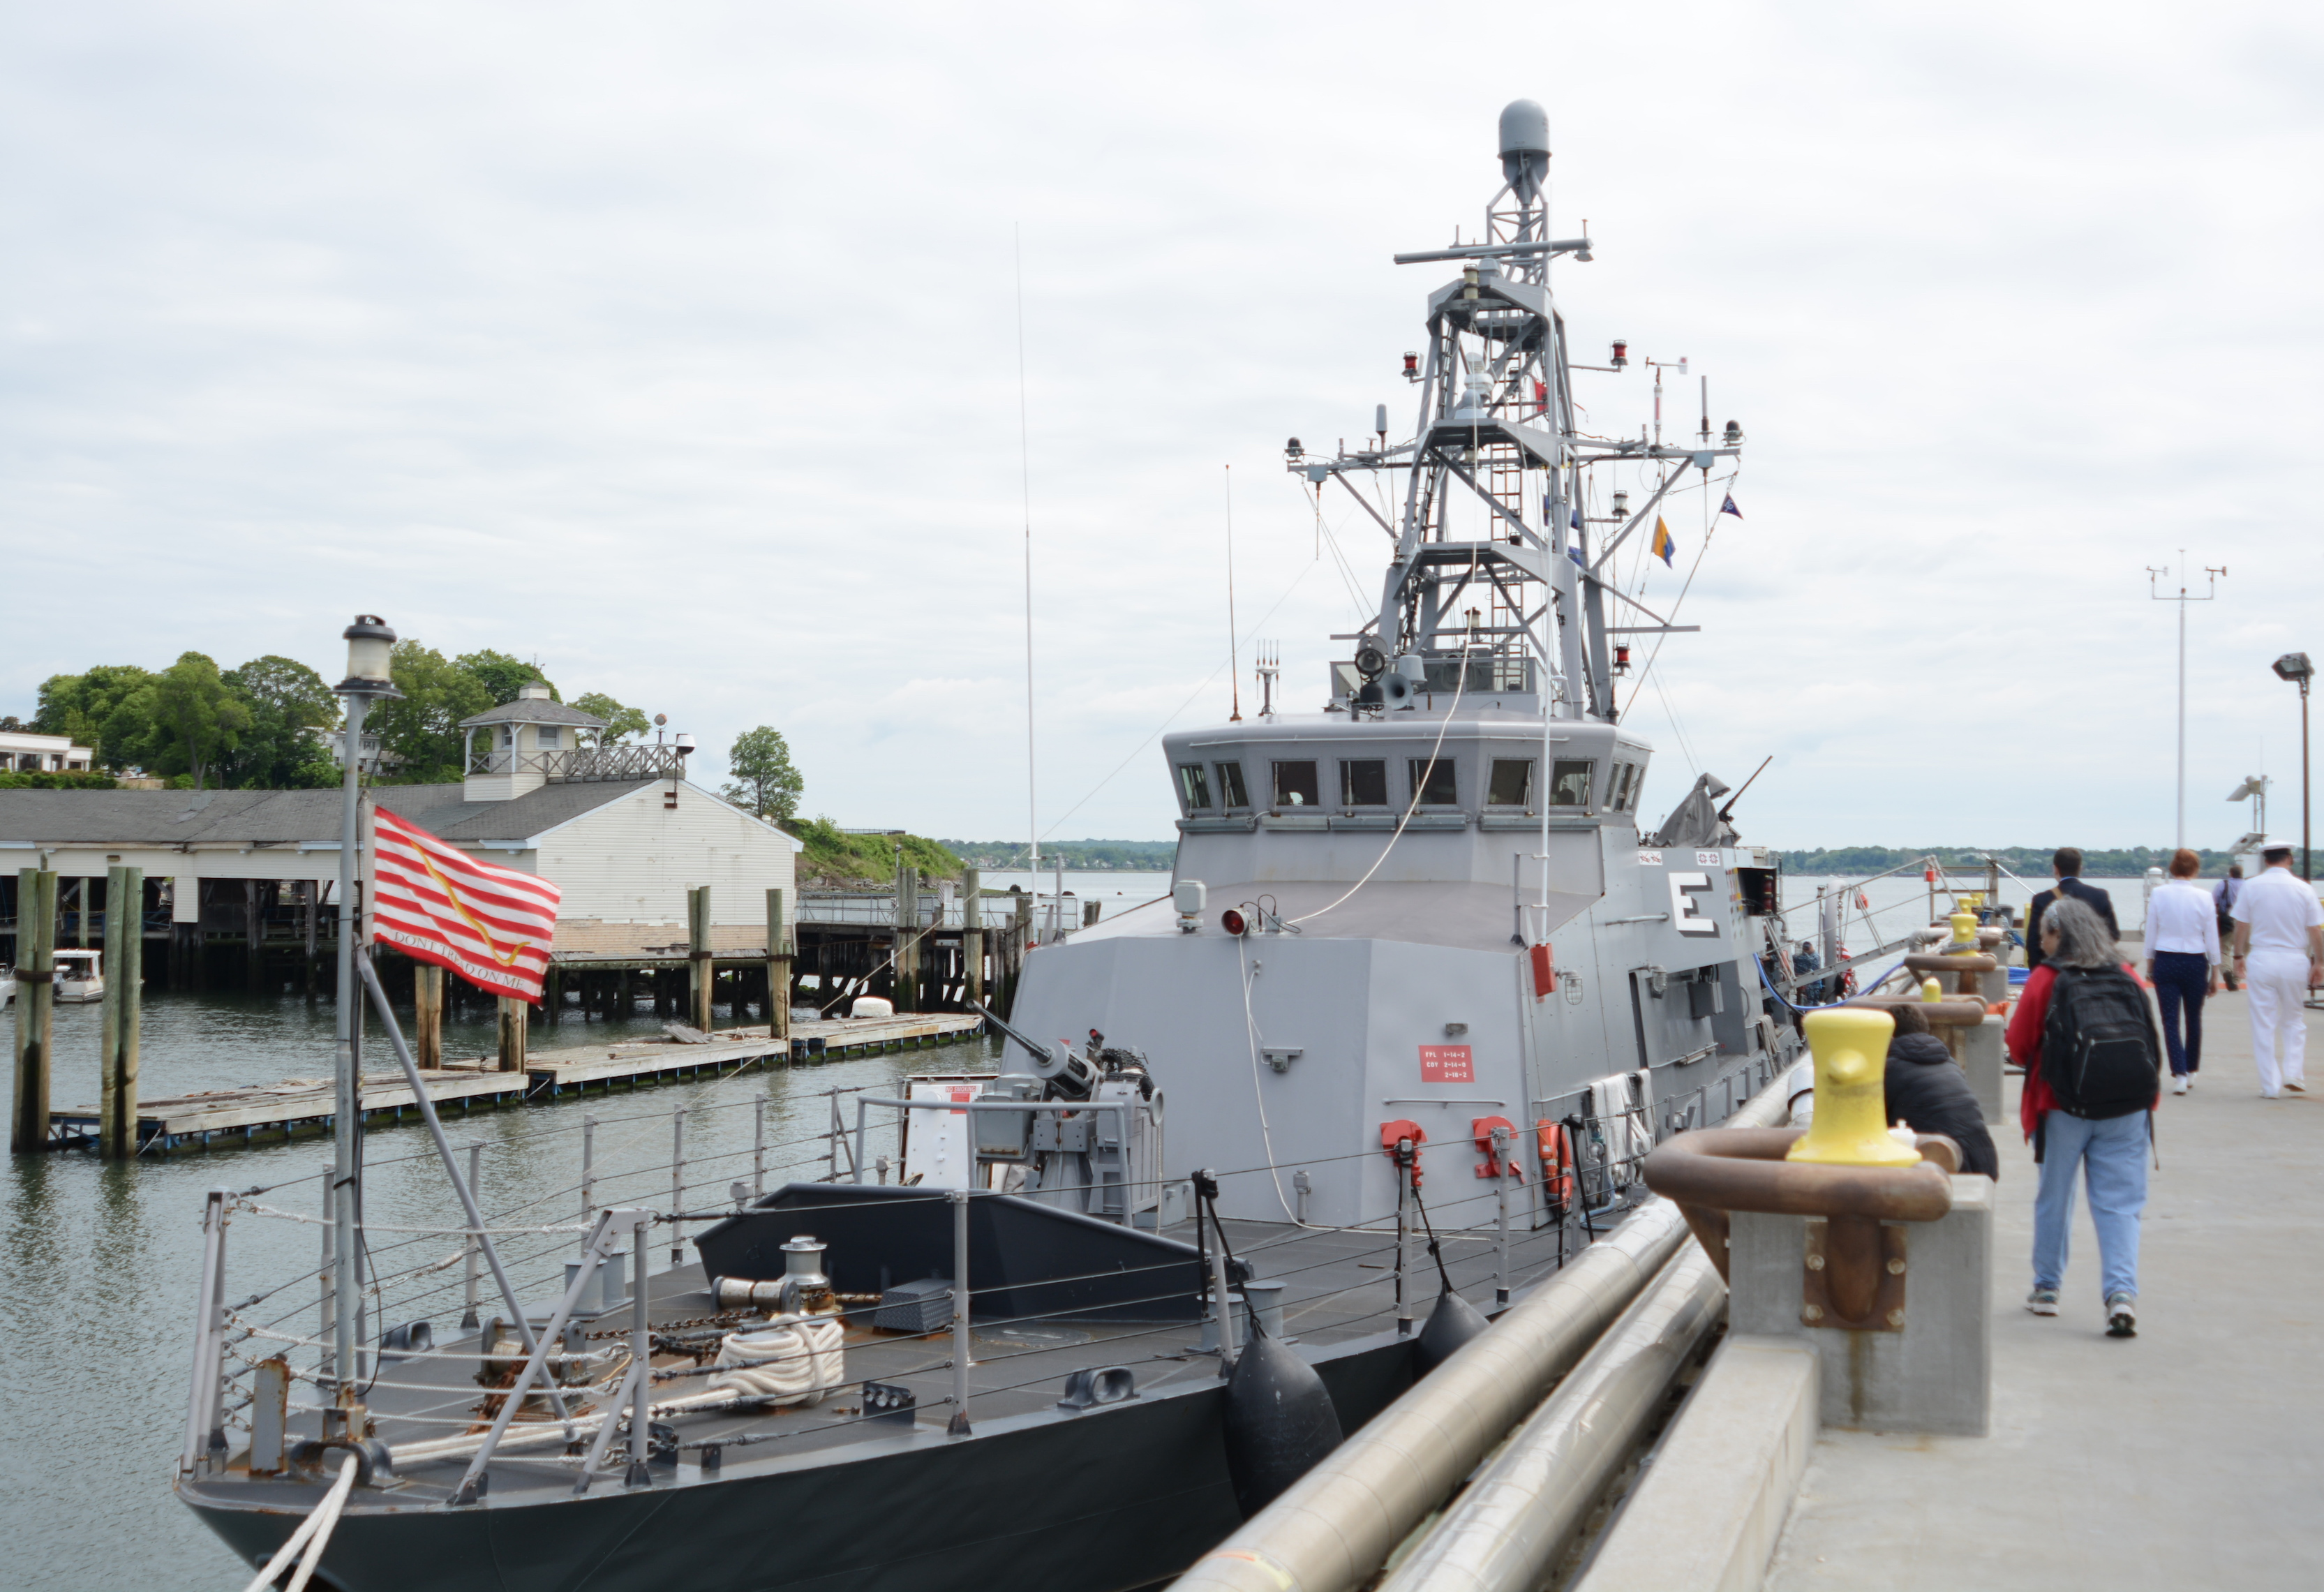 The USS Zephyr docked ashore at Kings Point in 2017. (Photo by Janelle Clausen)